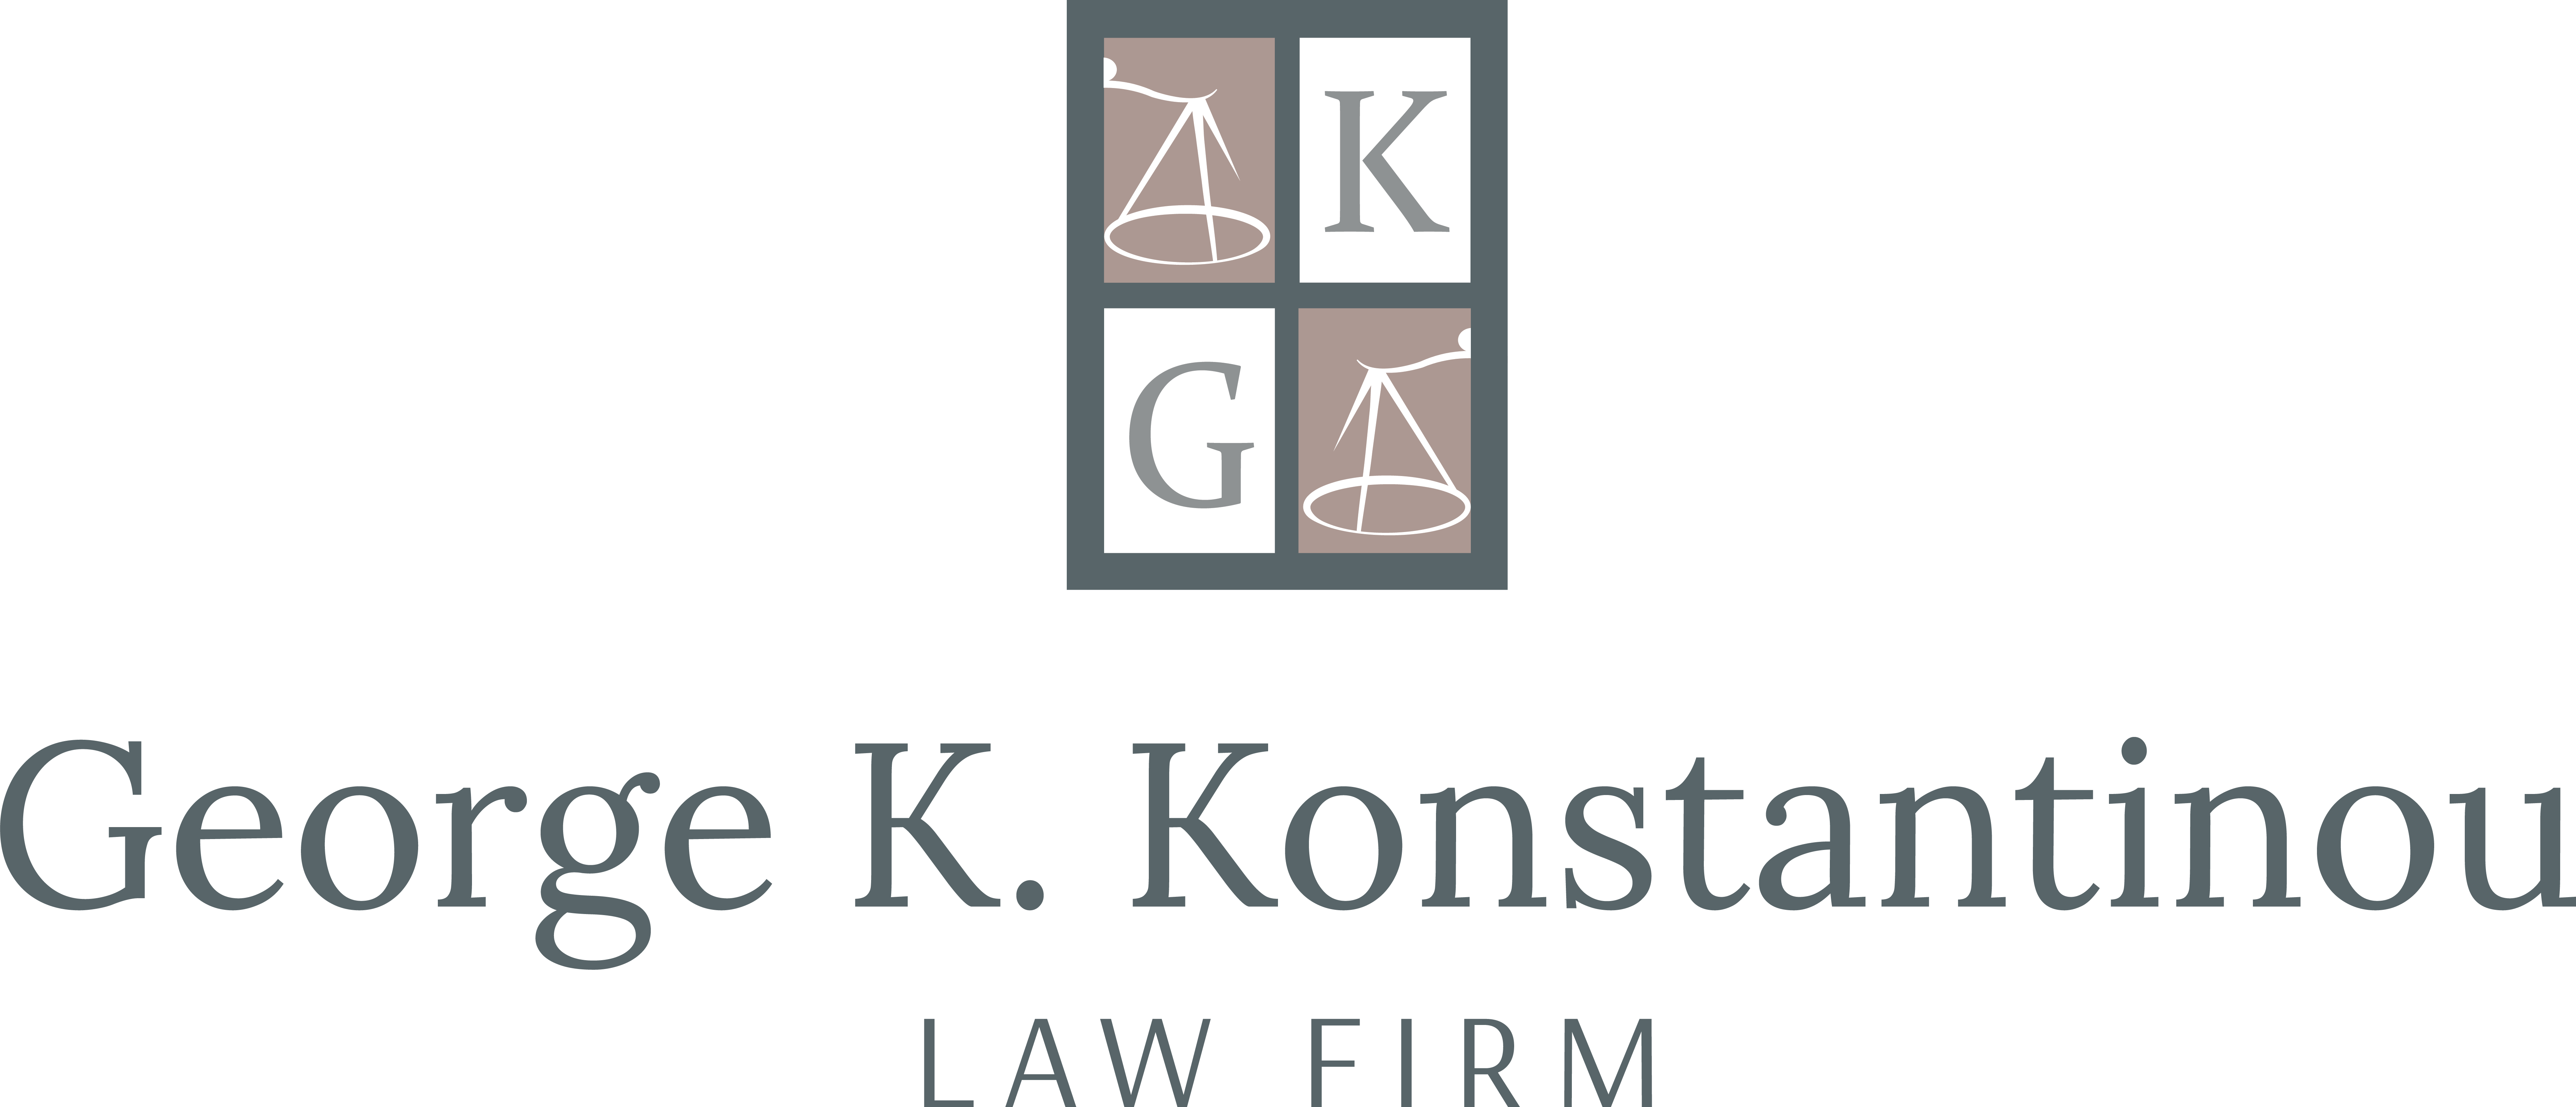 George K. Konstantinou Law Firm logo